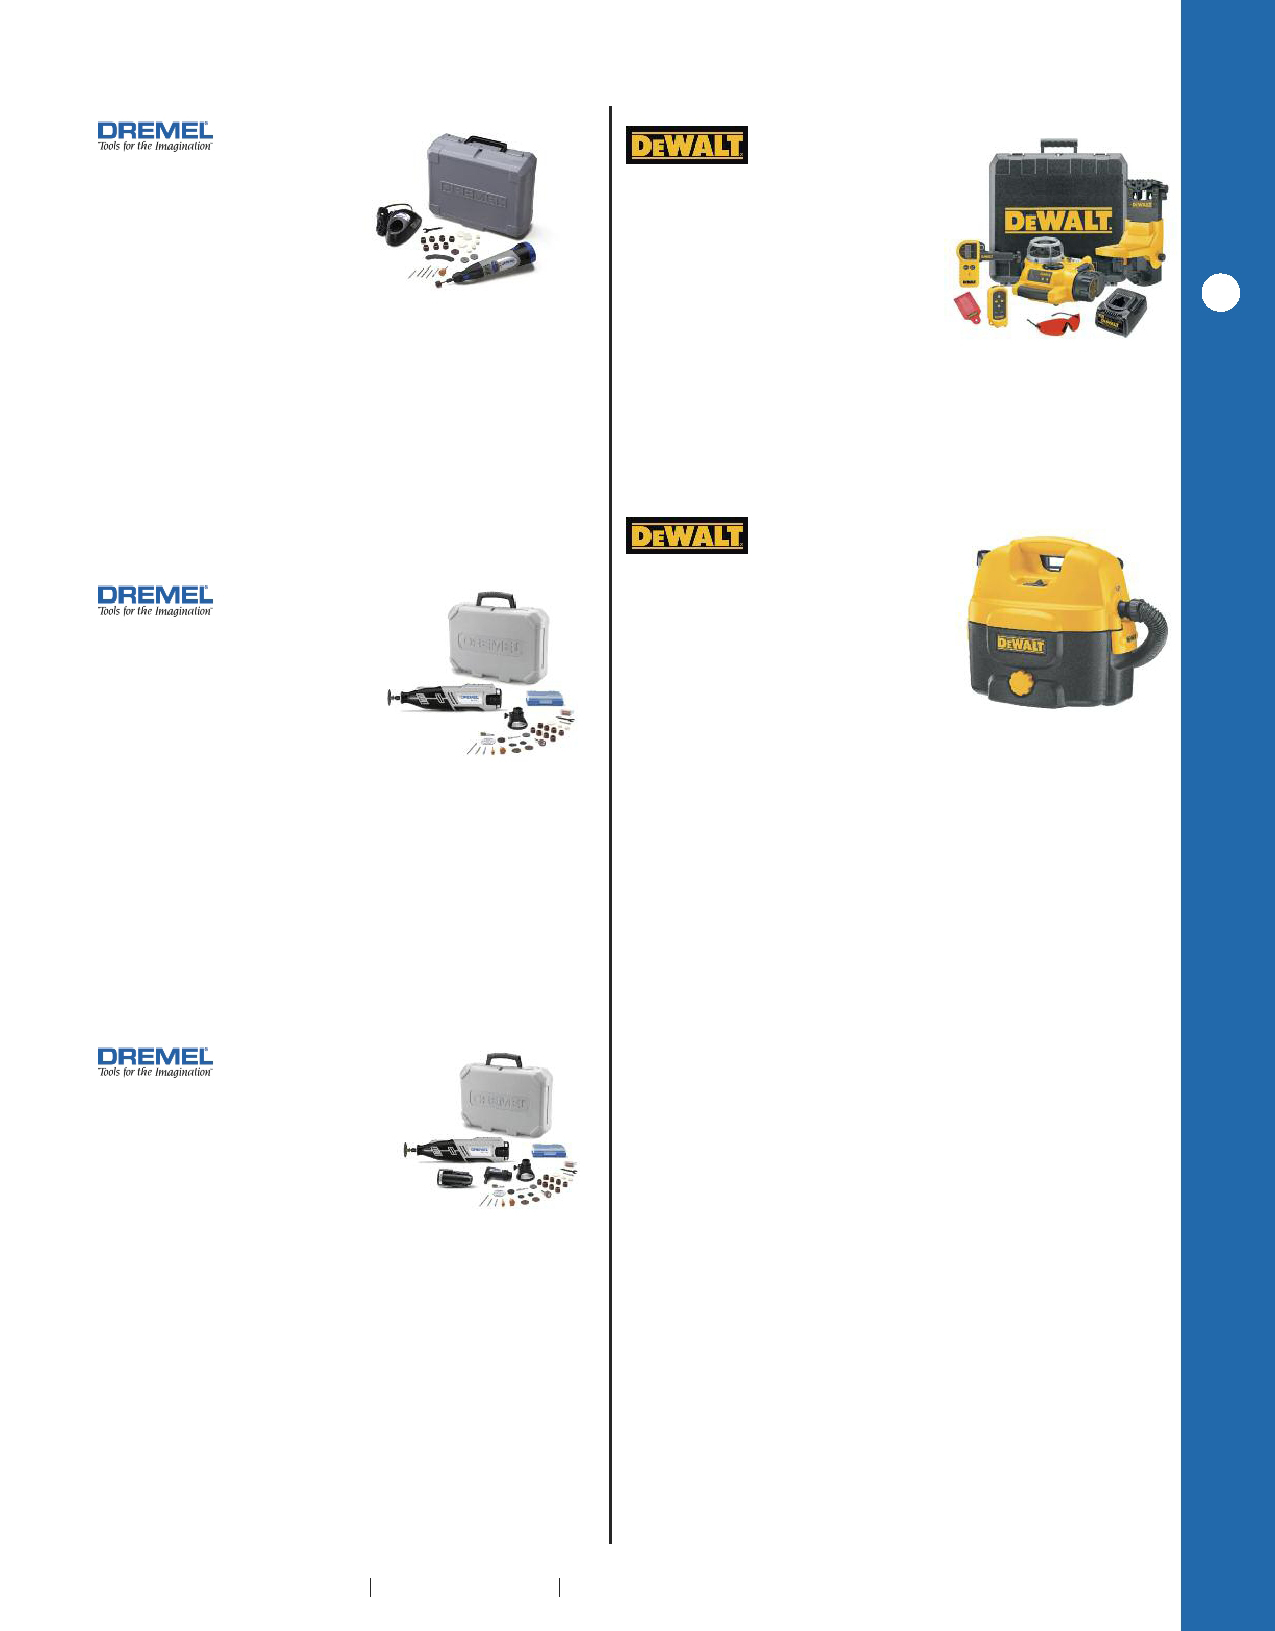 Wiring Diagram Dewalt Saw Tools Images Of Home Design Sawzall De Walt Dw304 Wire Junction Box